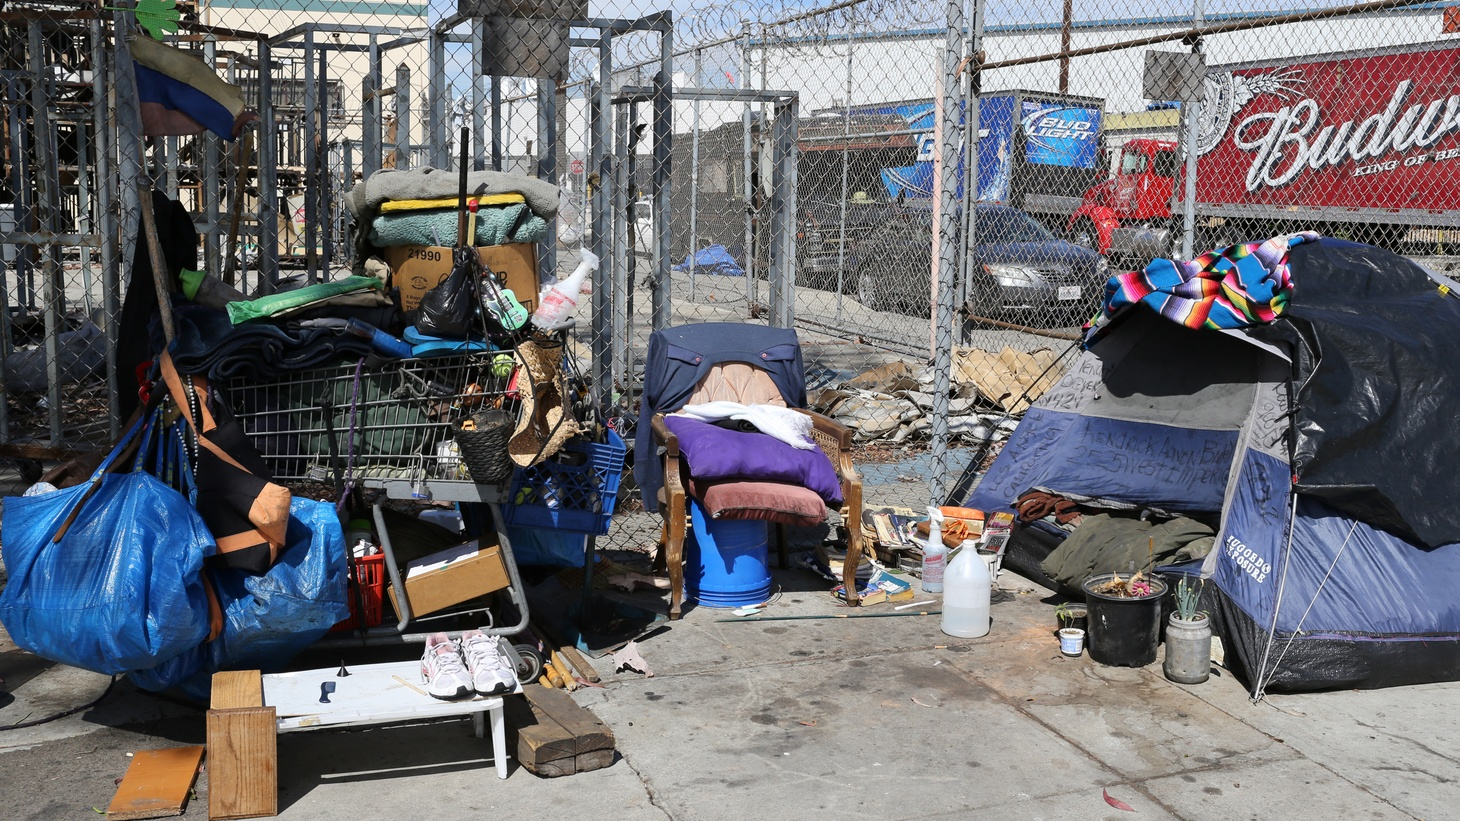 The LA Police Commission has set a new policy for LAPD officers to treat the homeless with more compassion and empathy. What will this look like in practice?